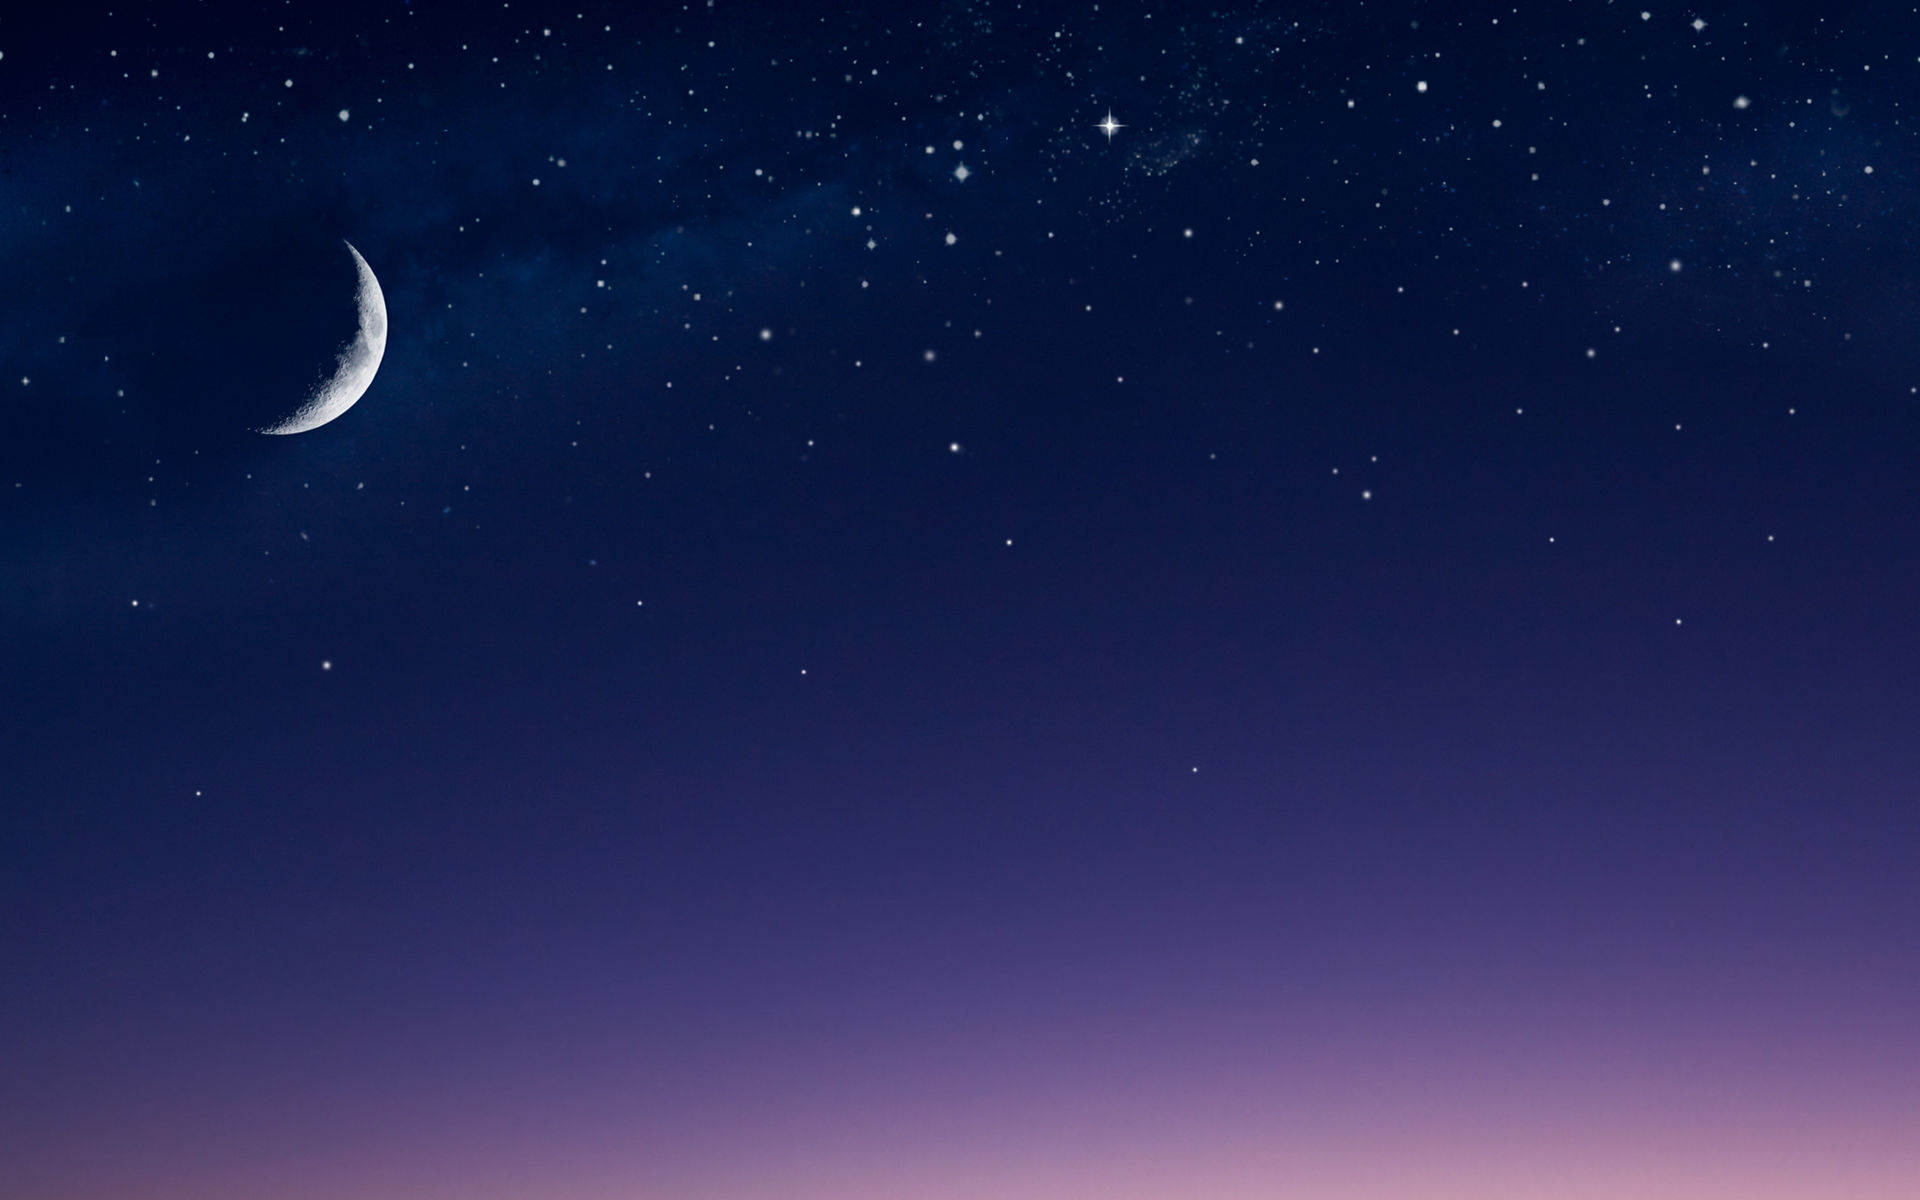 Moon, Night, Crescent Wallpaper And Background - Pretty Pictures Of The Night Sky , HD Wallpaper & Backgrounds